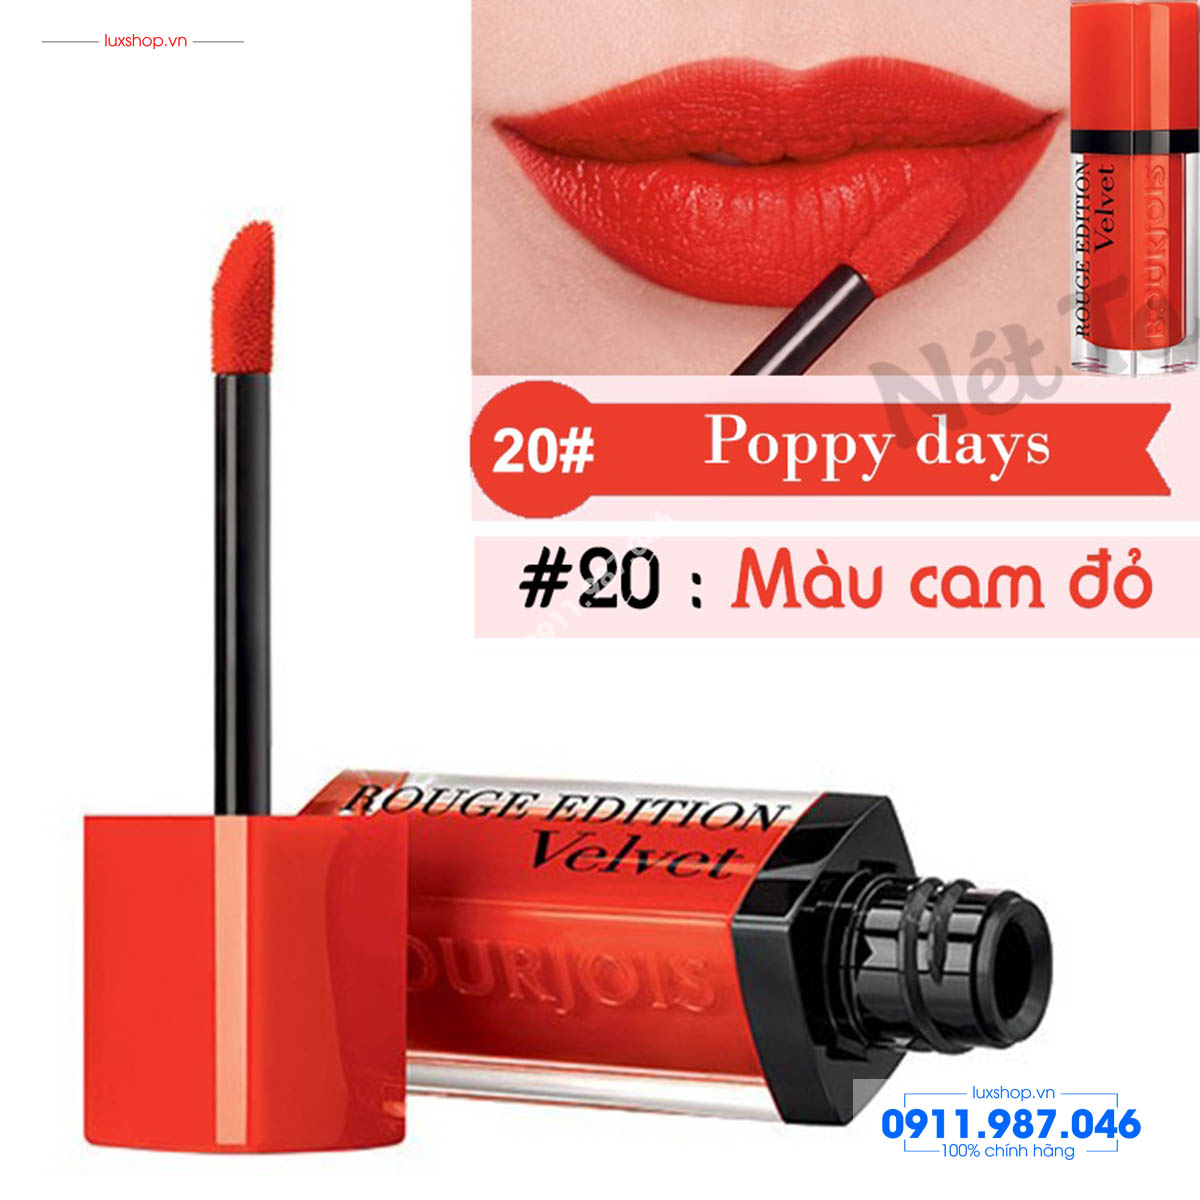 son-kem-li-velvet-20-poppy-days-bourjois-rouge-edition-mau-cam-do-chinh-hang-phap